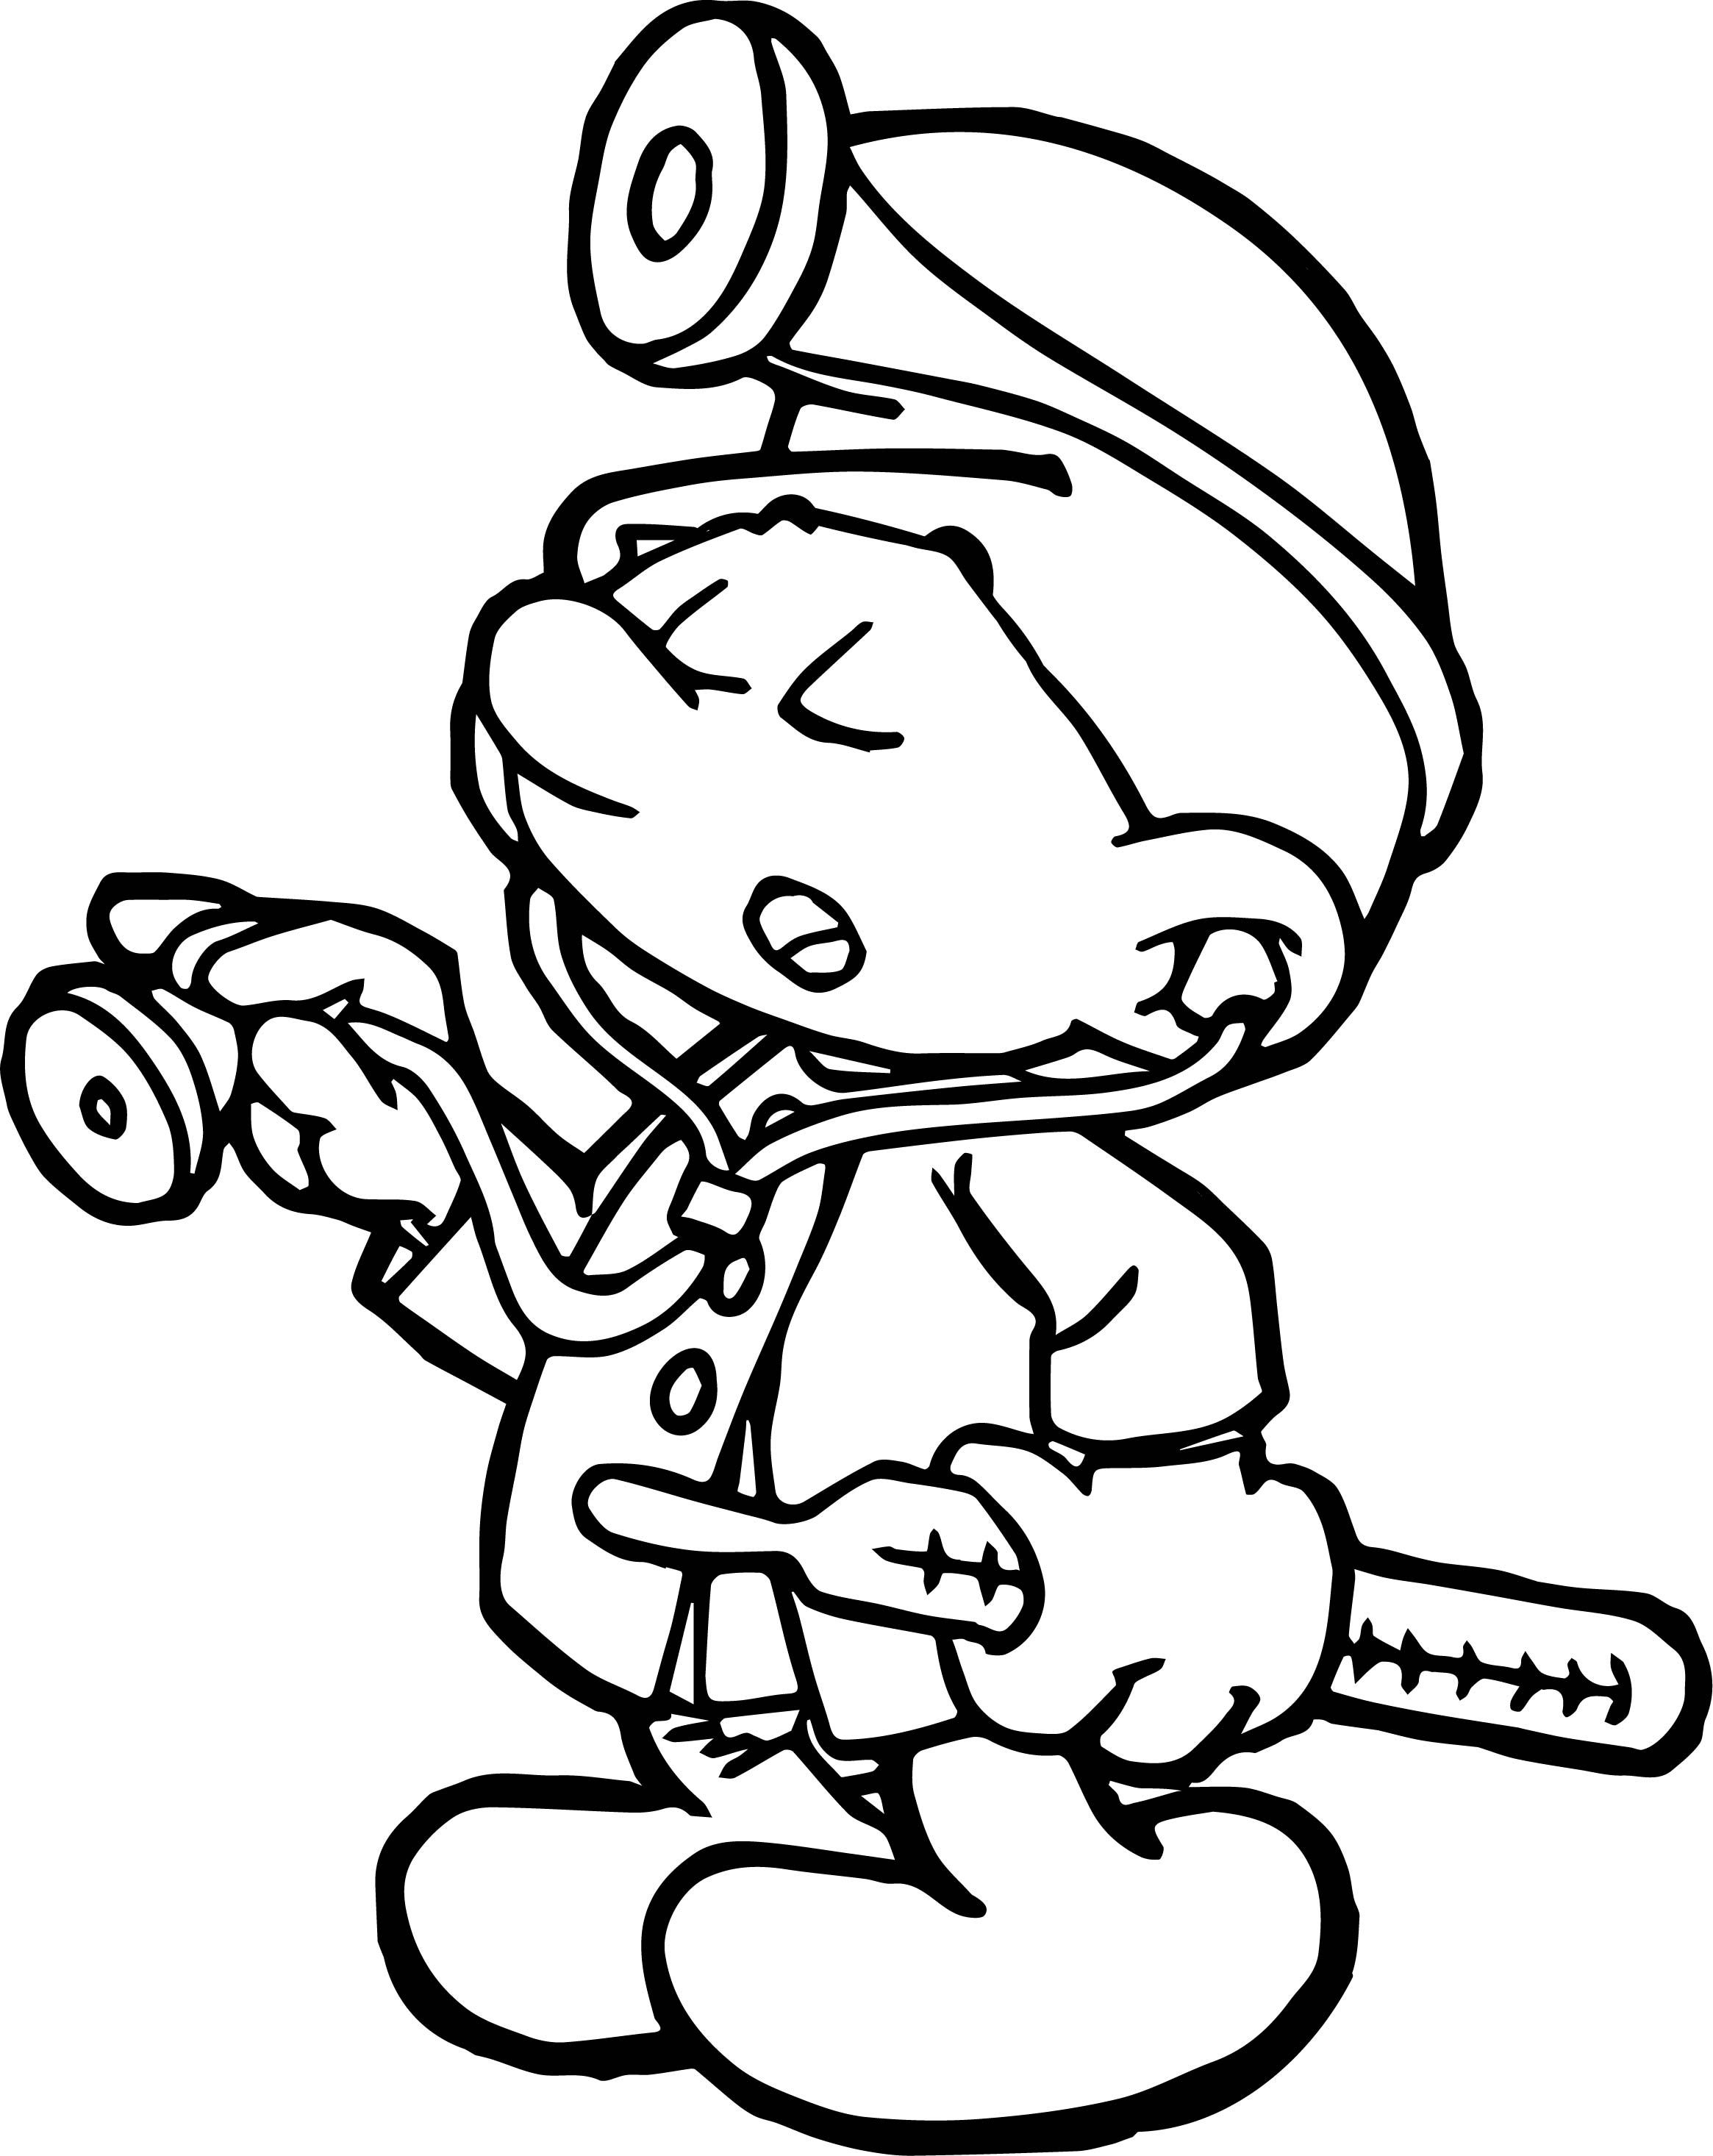 Cool Doctor Smurf Coloring Page | Wecoloringpage | Coloring